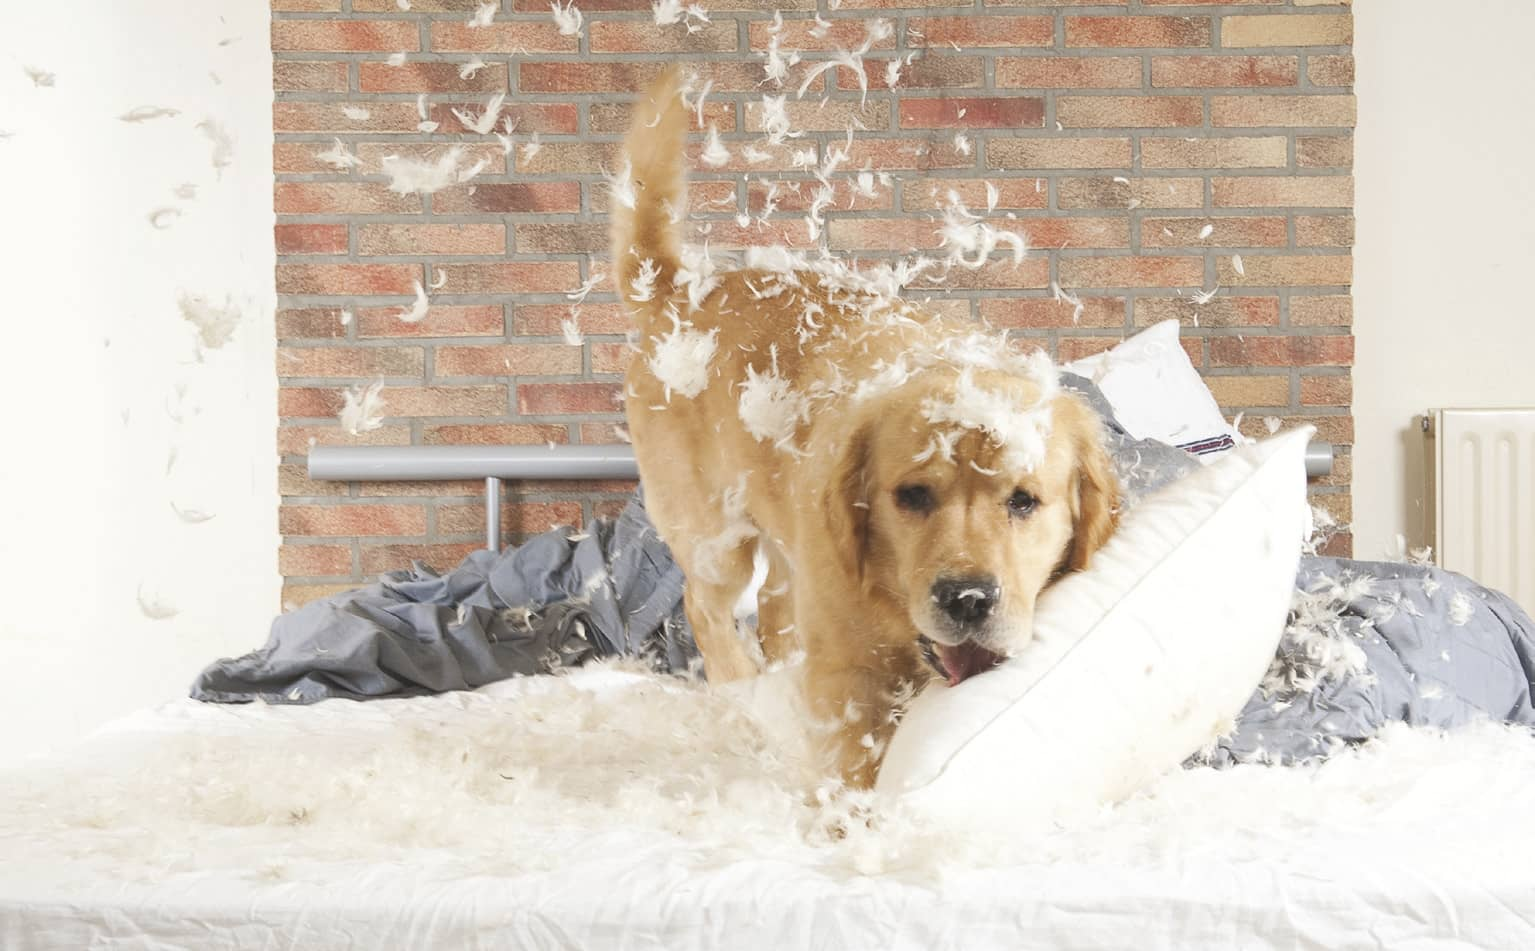 DESTRUCTIVE HABITS IN DOGS AND WAYS TO CORRECT THEM